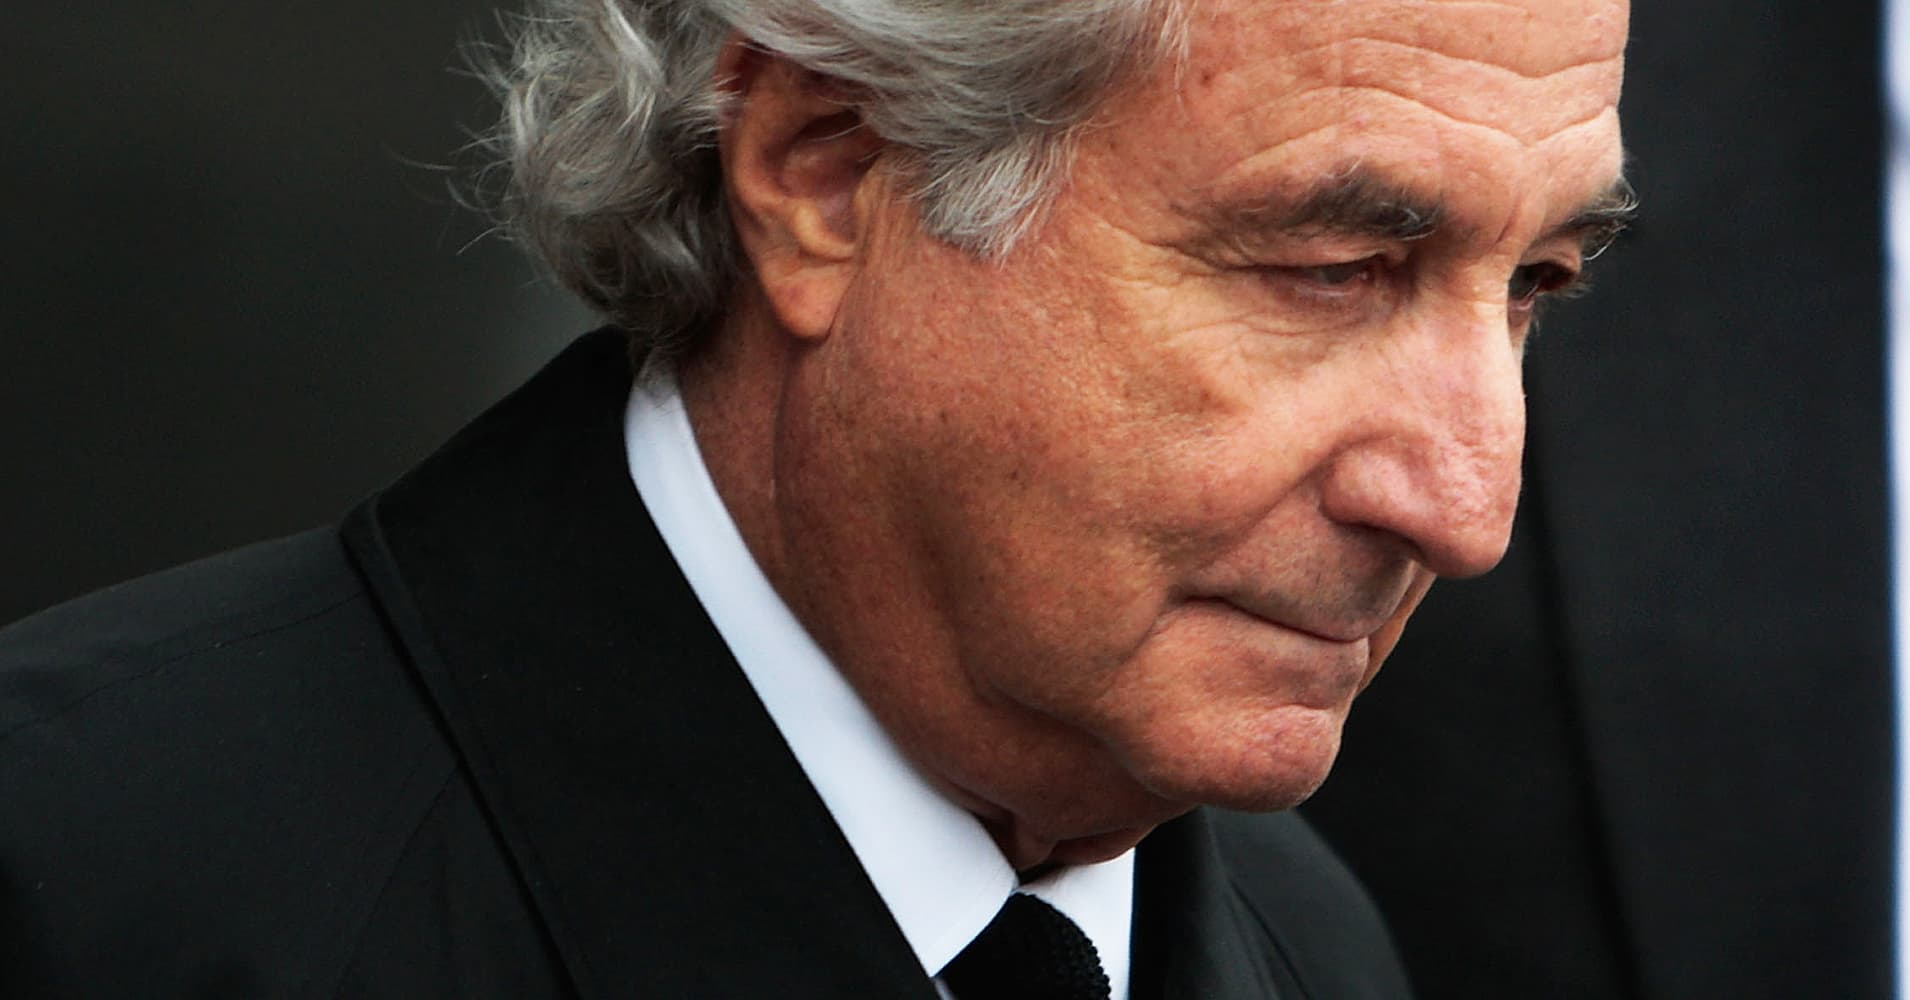 the bernard madoffs fraud essay Key words: fraud triangle, role of auditors, madoff's scandal, ponzi scheme 1  introduction when it was discovered that bernard madoff's asset.